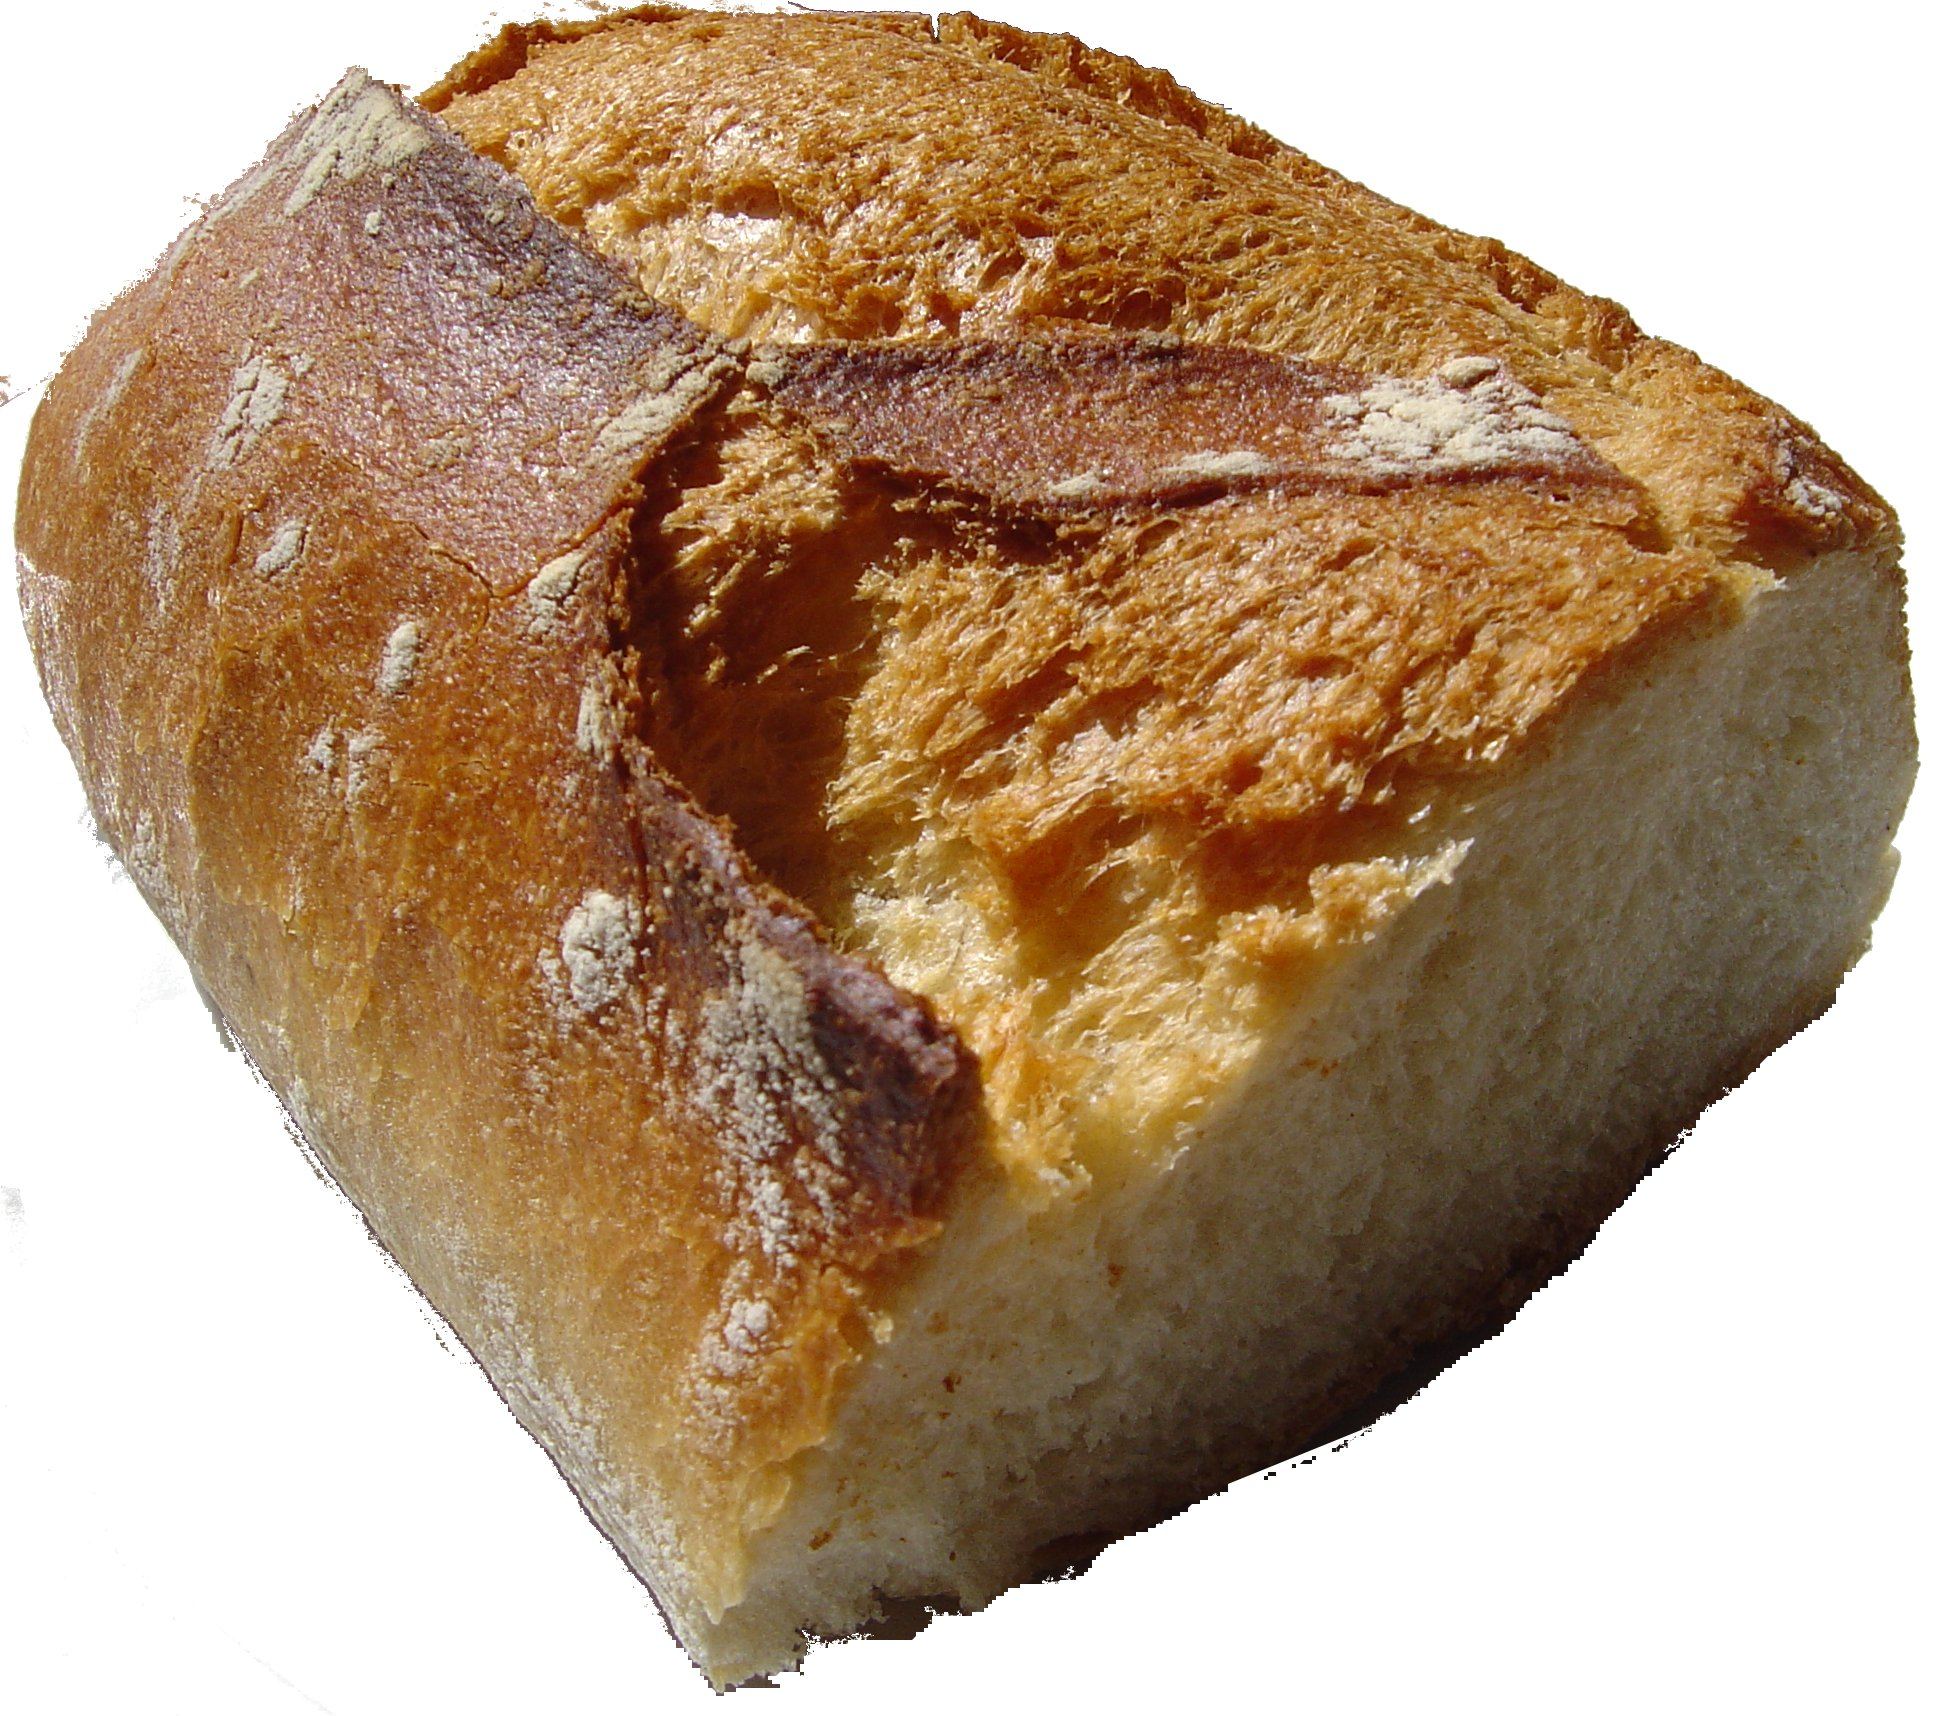 File:French bread DSC00865.JPG - Wikipedia